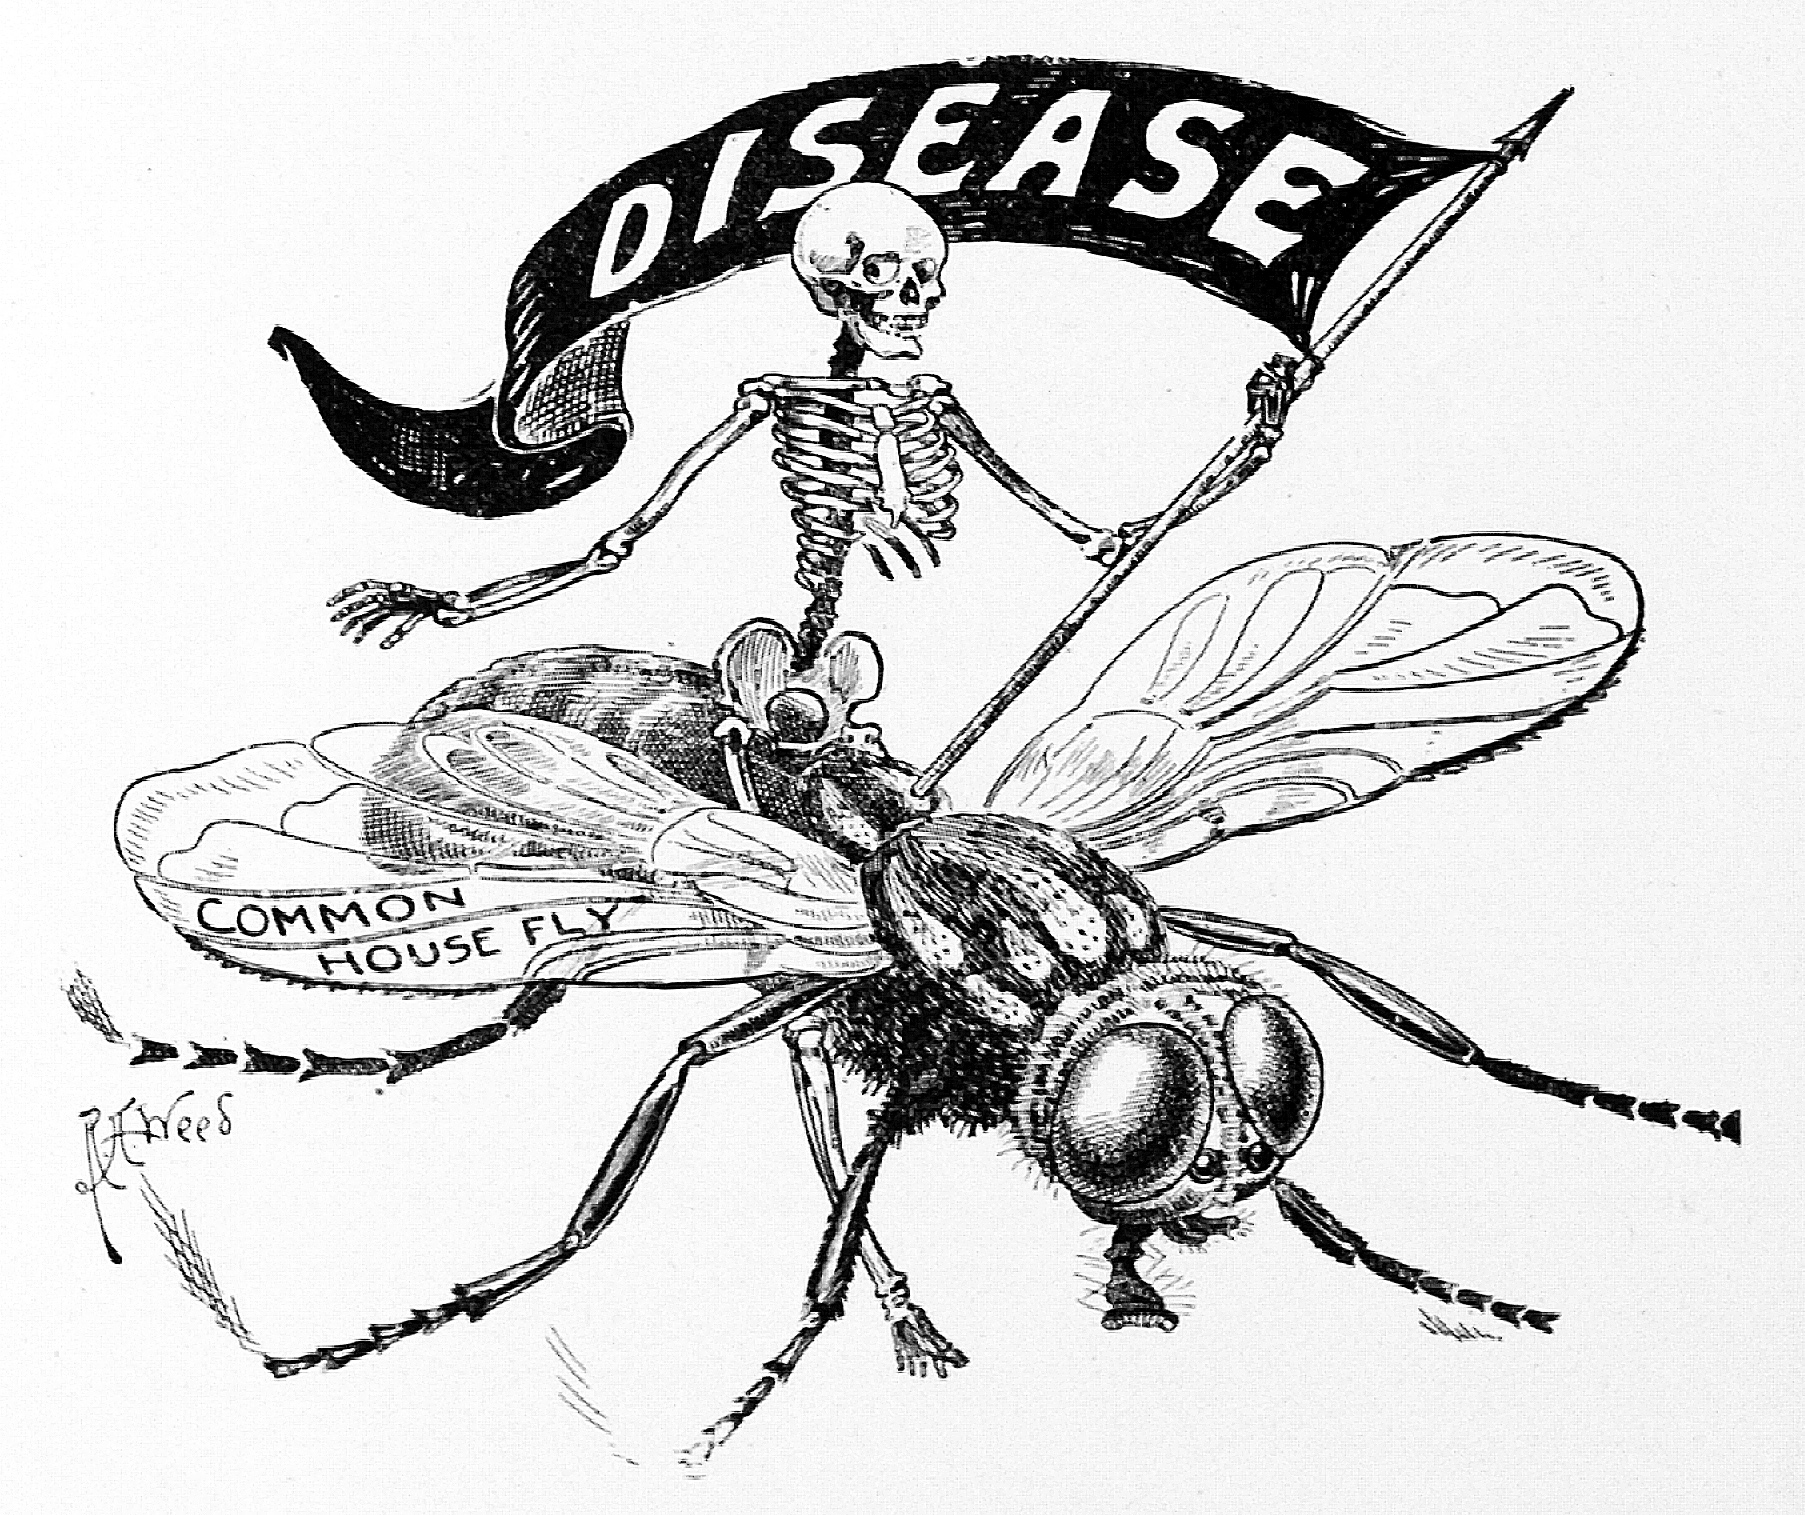 1805x1515 Cartoon Illustrating House Fly Carrying Disease.